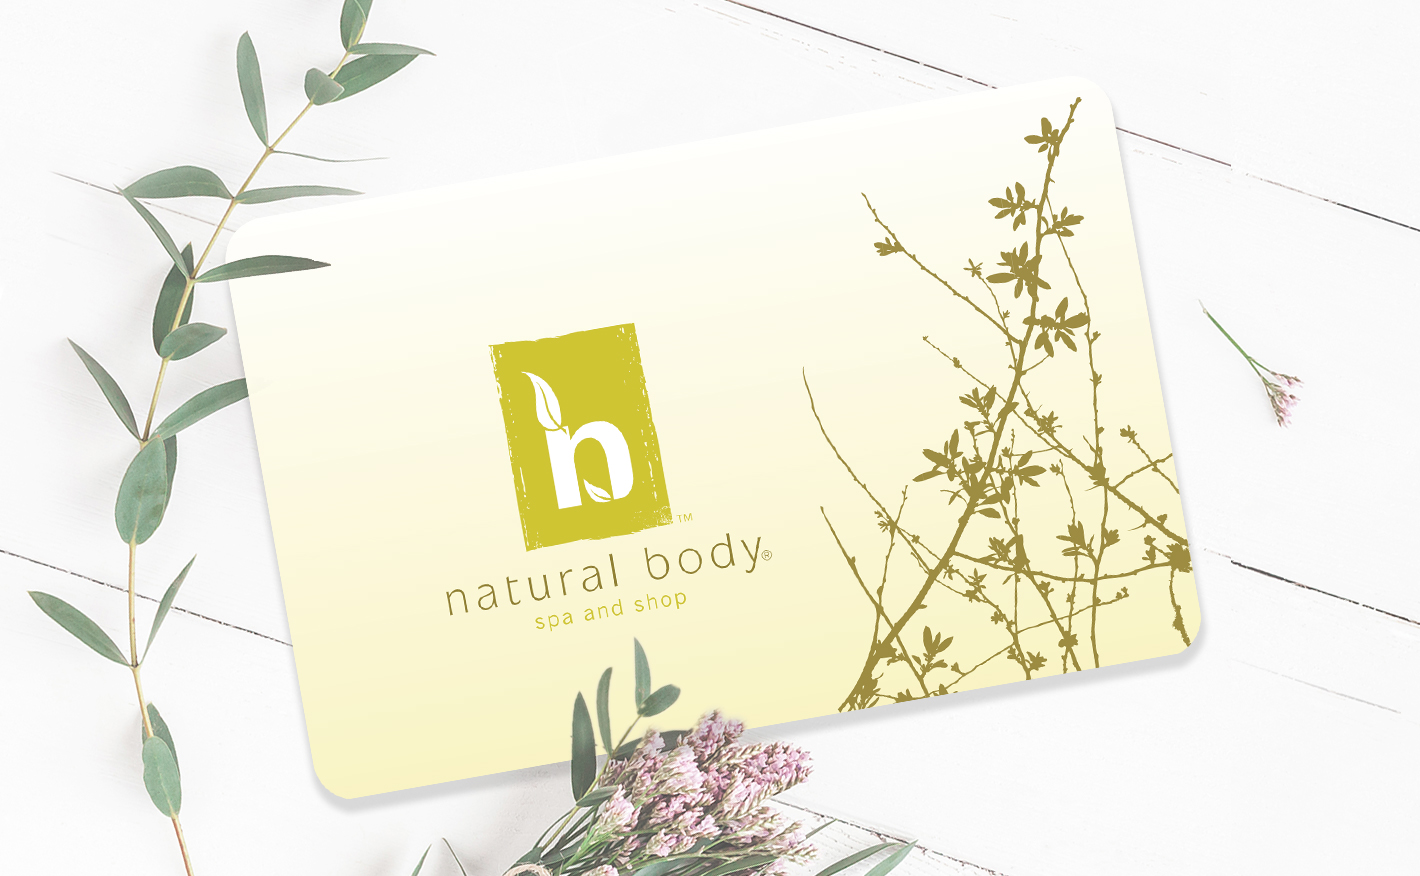 Natural Body gift card on background with eucalyptus